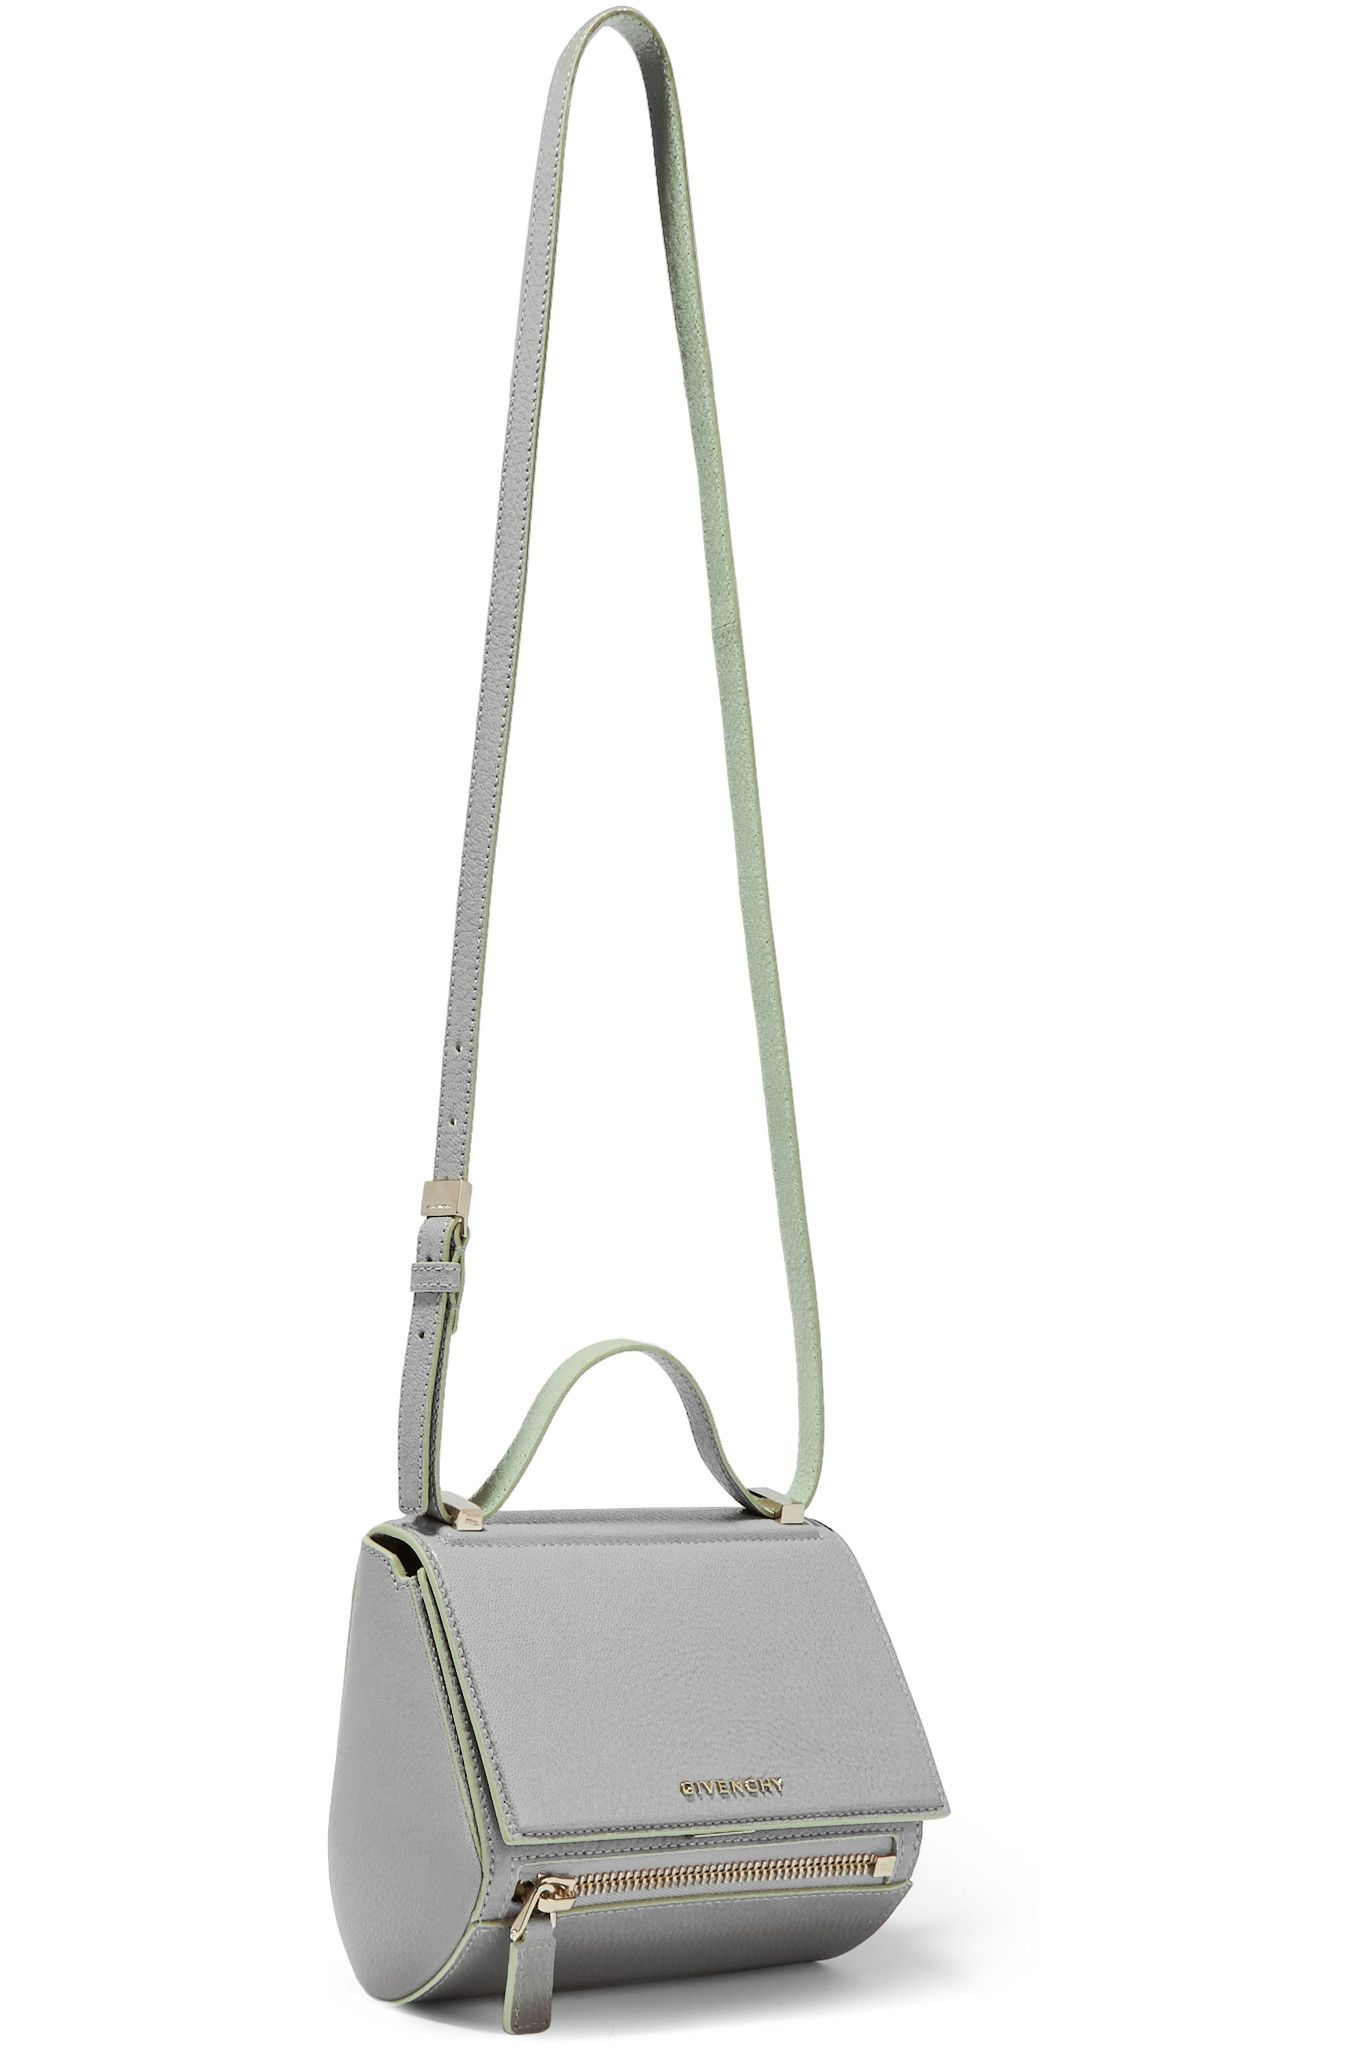 3880367ab3 GIVENCHY Pandora Box shoulder bag in gray and mint textured-leather ...